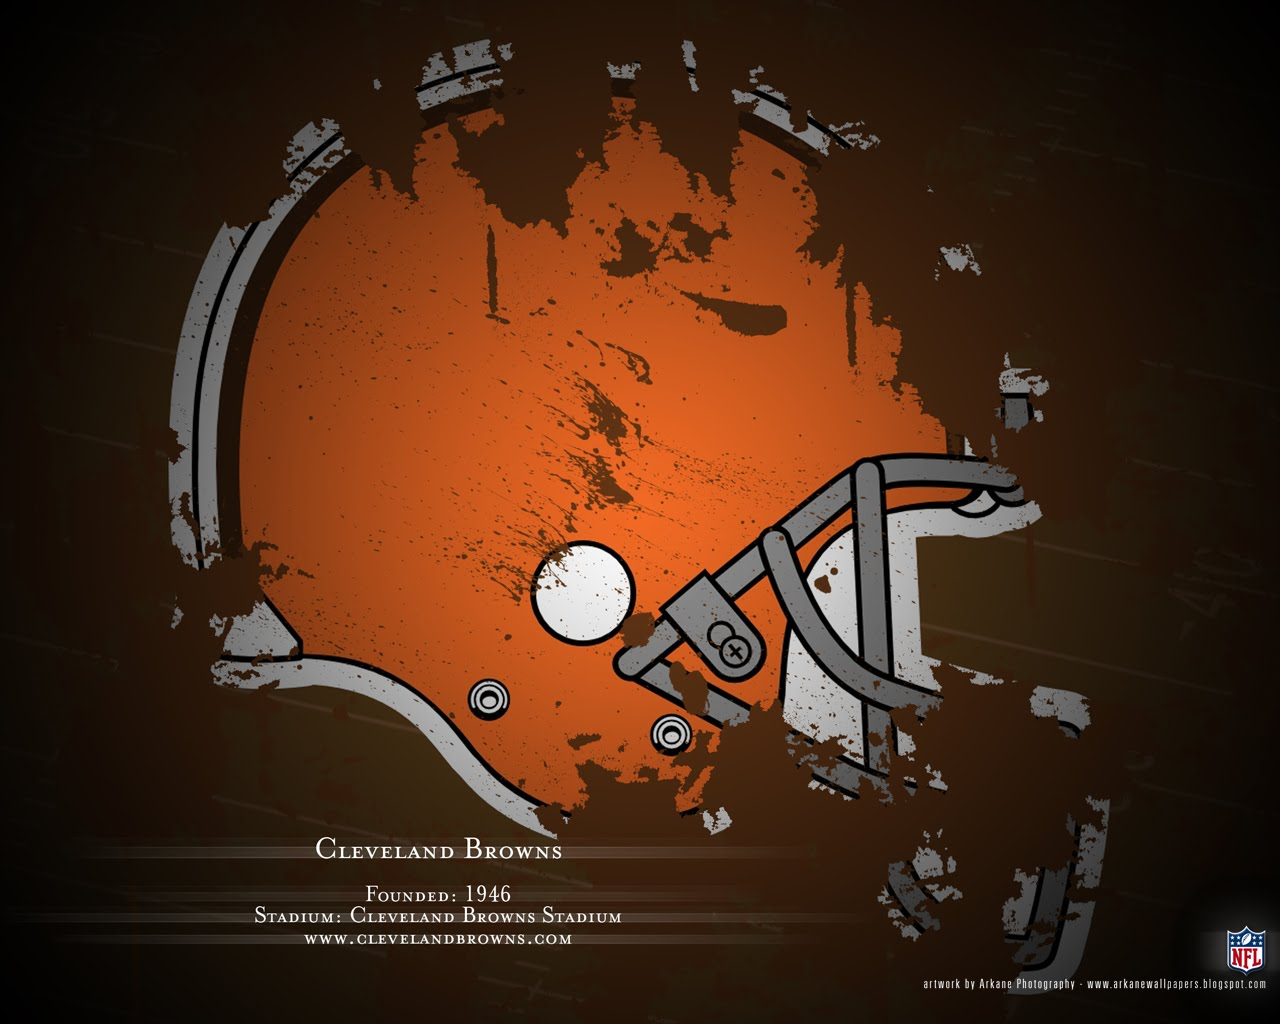 arkane nfl wallpapers profile cleveland browns